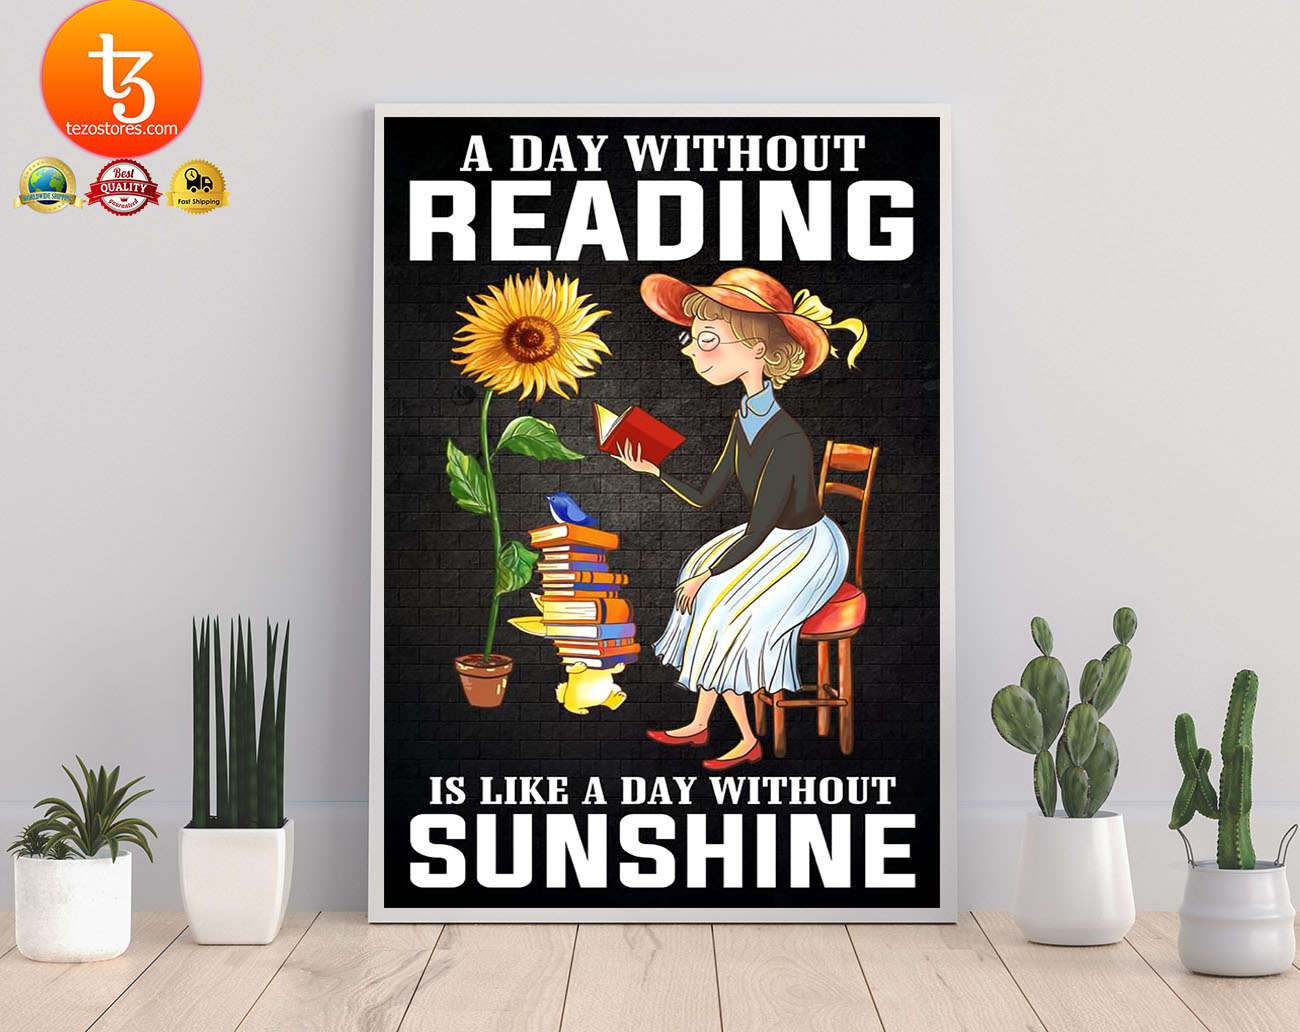 A day without reading is like a day without sunshine poster